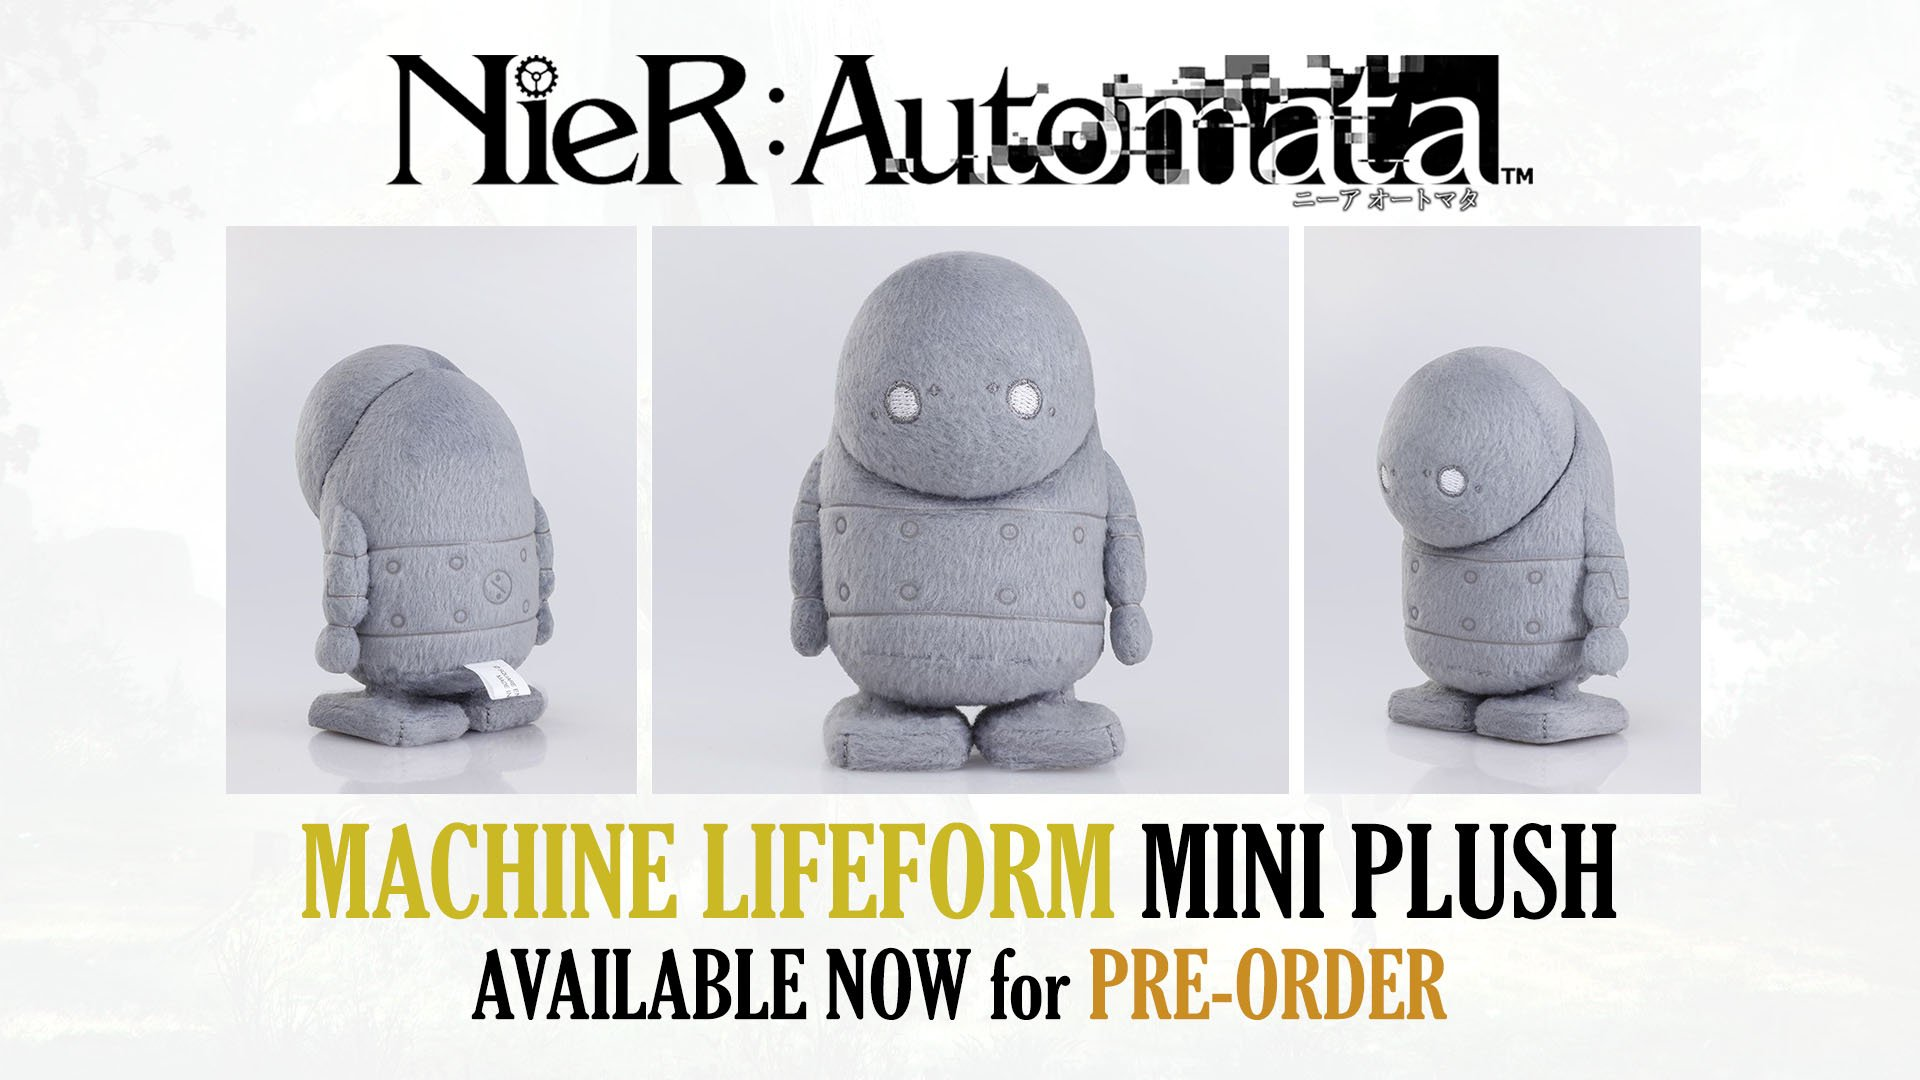 nier-automata-machine-lifeform-mini-plush-pre-order-platinum-games-square-enix-jrpg-action-rpg-playstation-4-pc-steam